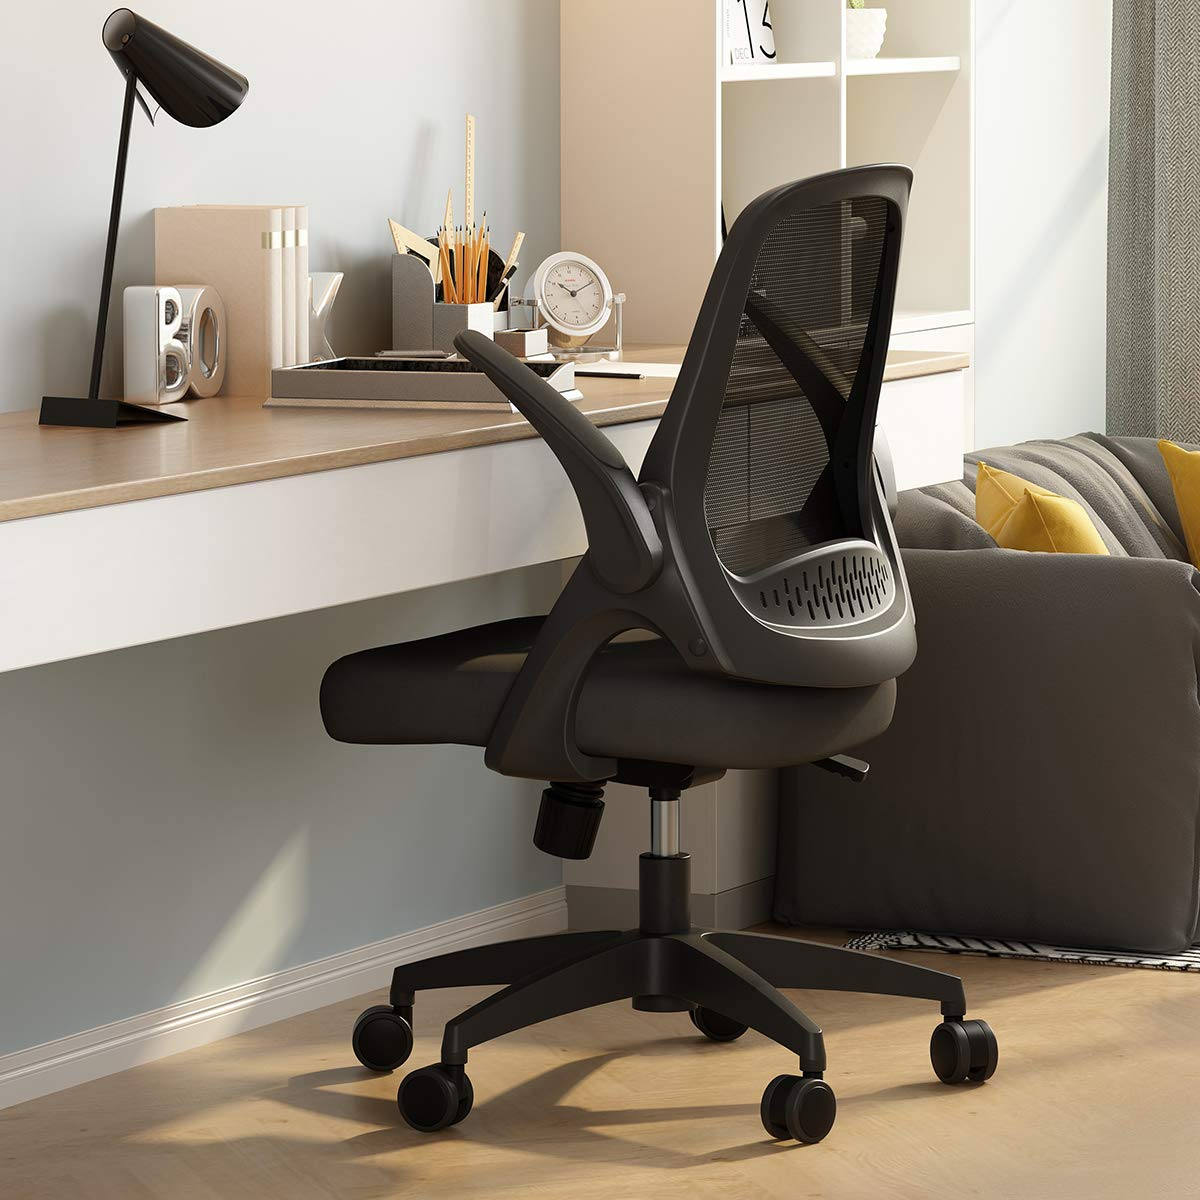 Astounding Details About Hbada Office Task Desk Chair Swivel Home Comfort Chairs With Flip Up Arms And Alphanode Cool Chair Designs And Ideas Alphanodeonline